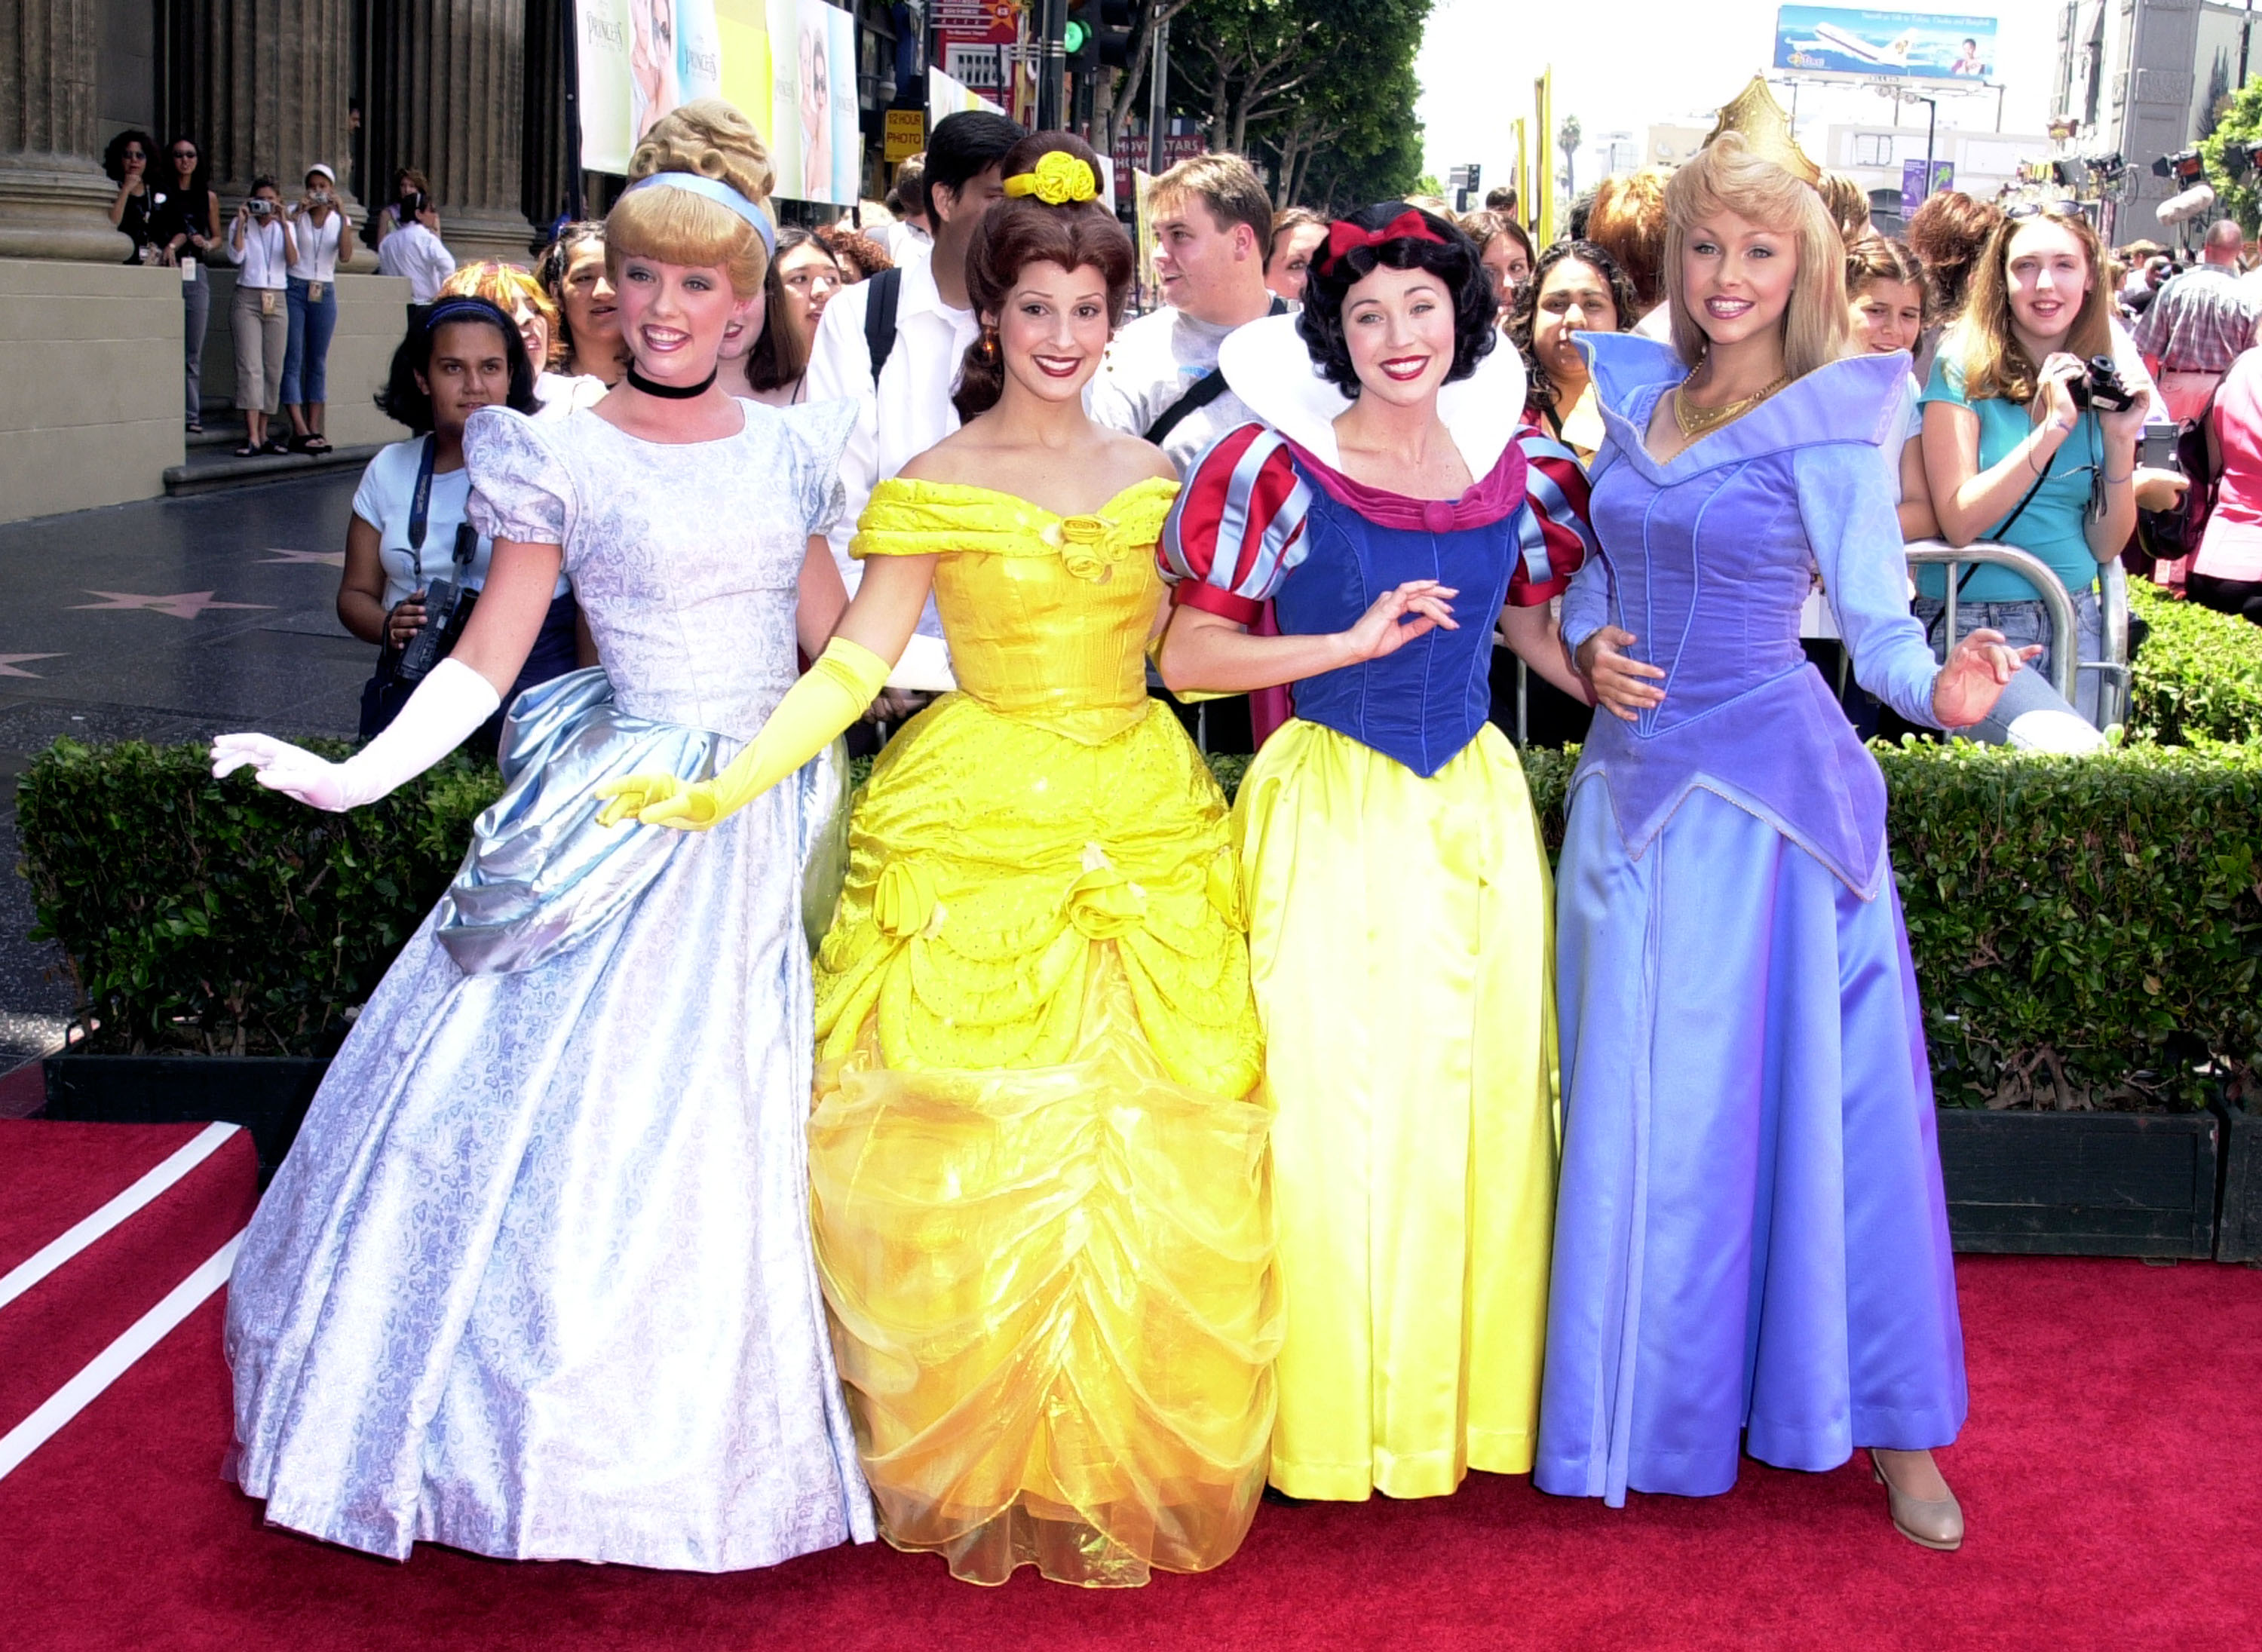 Disney Characters during The Princess Diaries Premiere at El Capitan Theatre in Hollywood, California, United States.